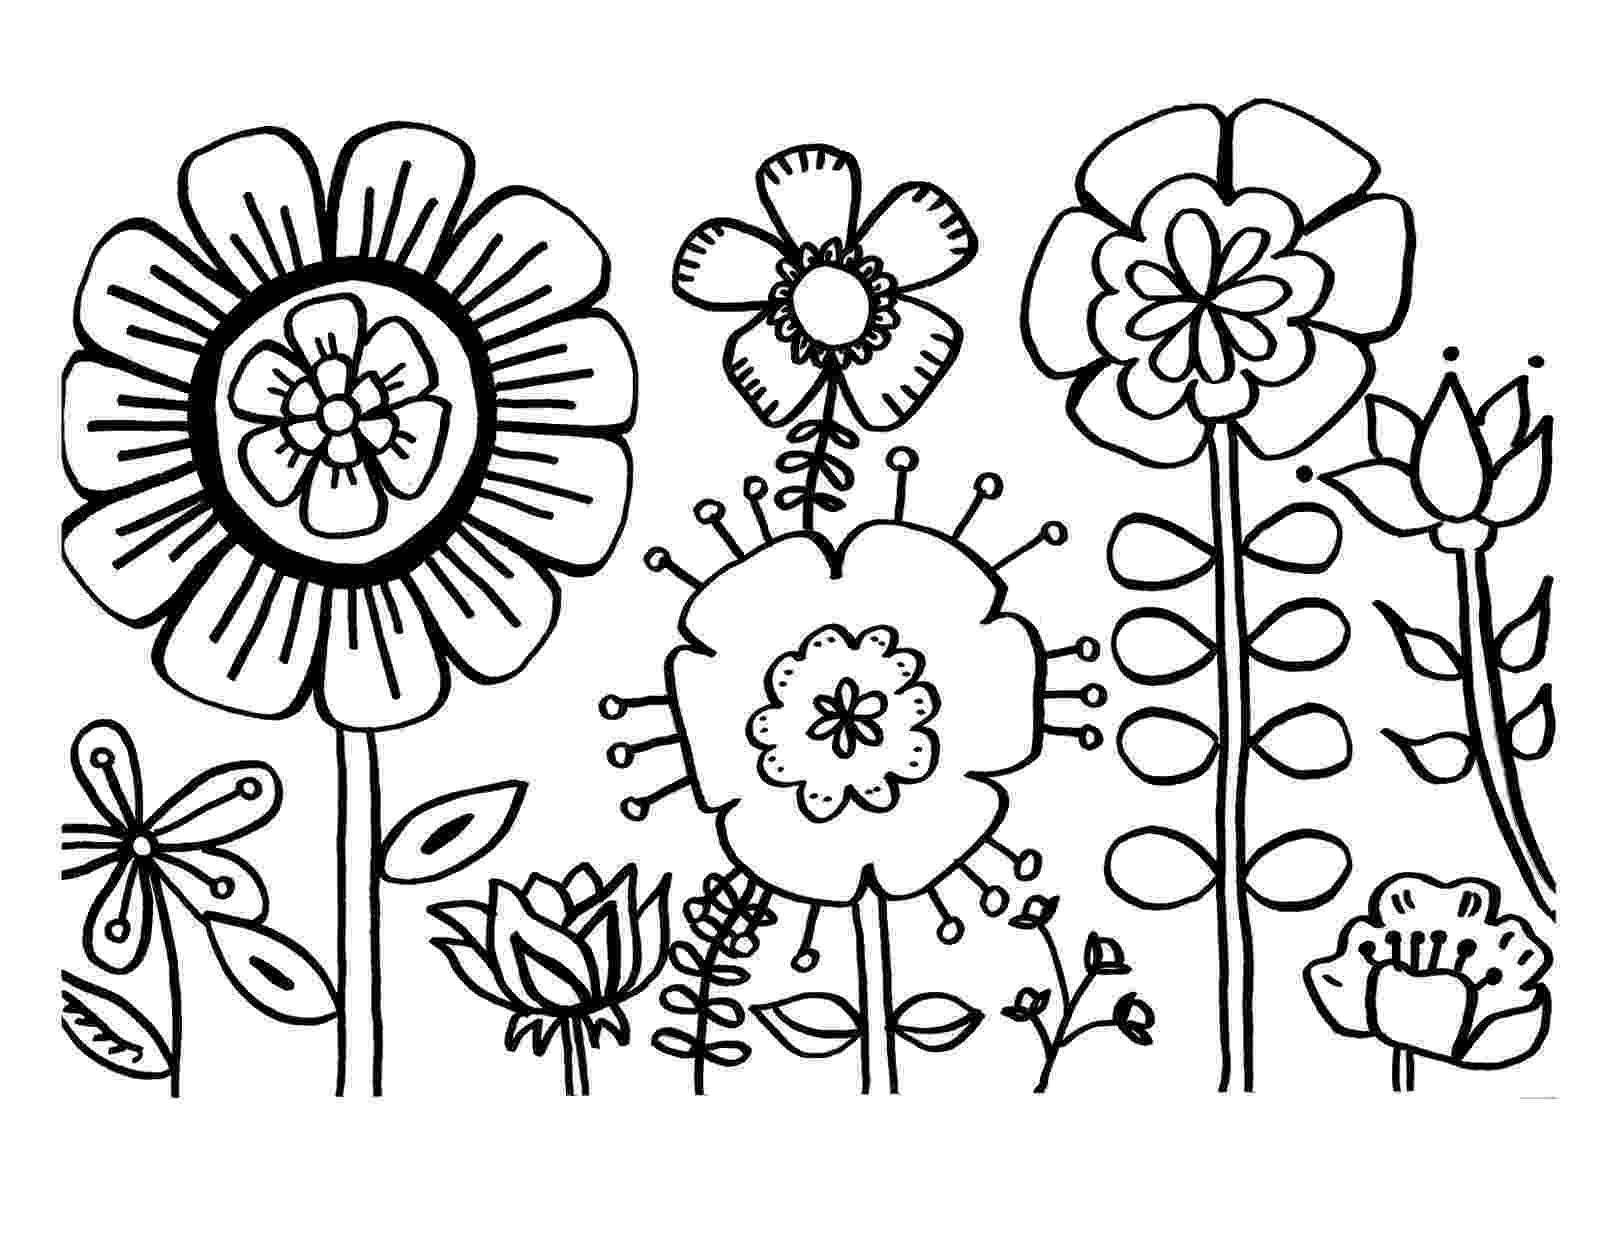 flowers coloring pages for kids free printable flower coloring pages for kids best for pages flowers kids coloring